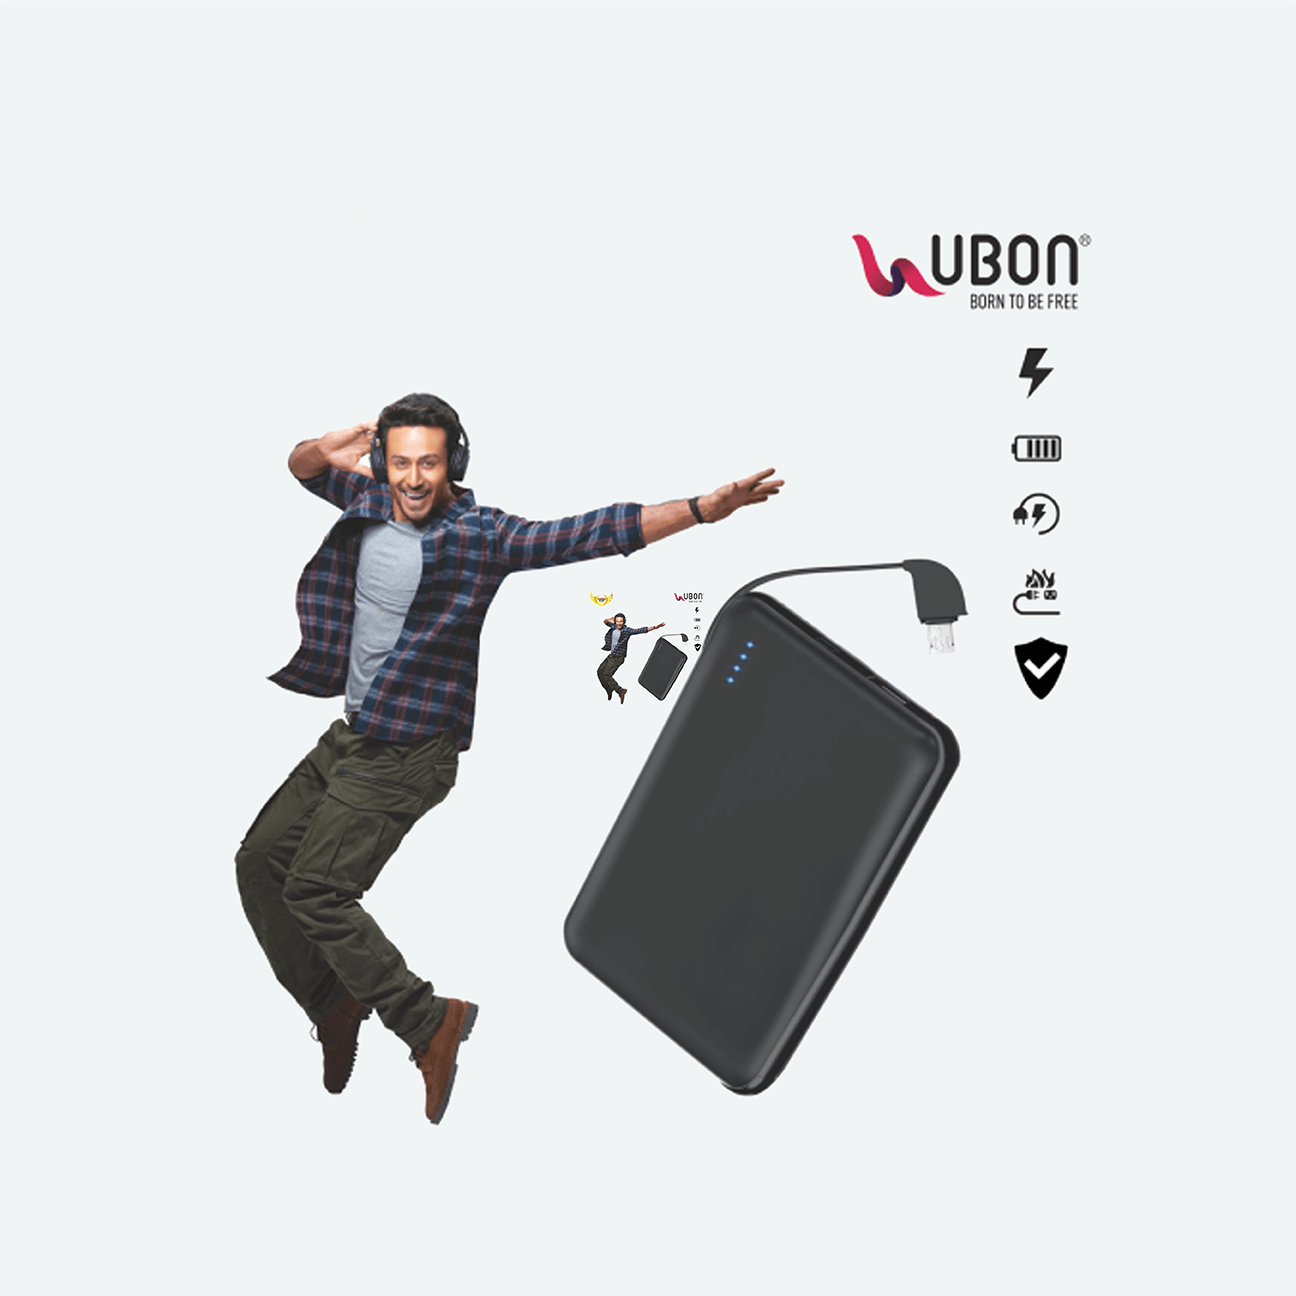 Ubon PB-X15 Mobile Power Bank  Built-in 5000mAh